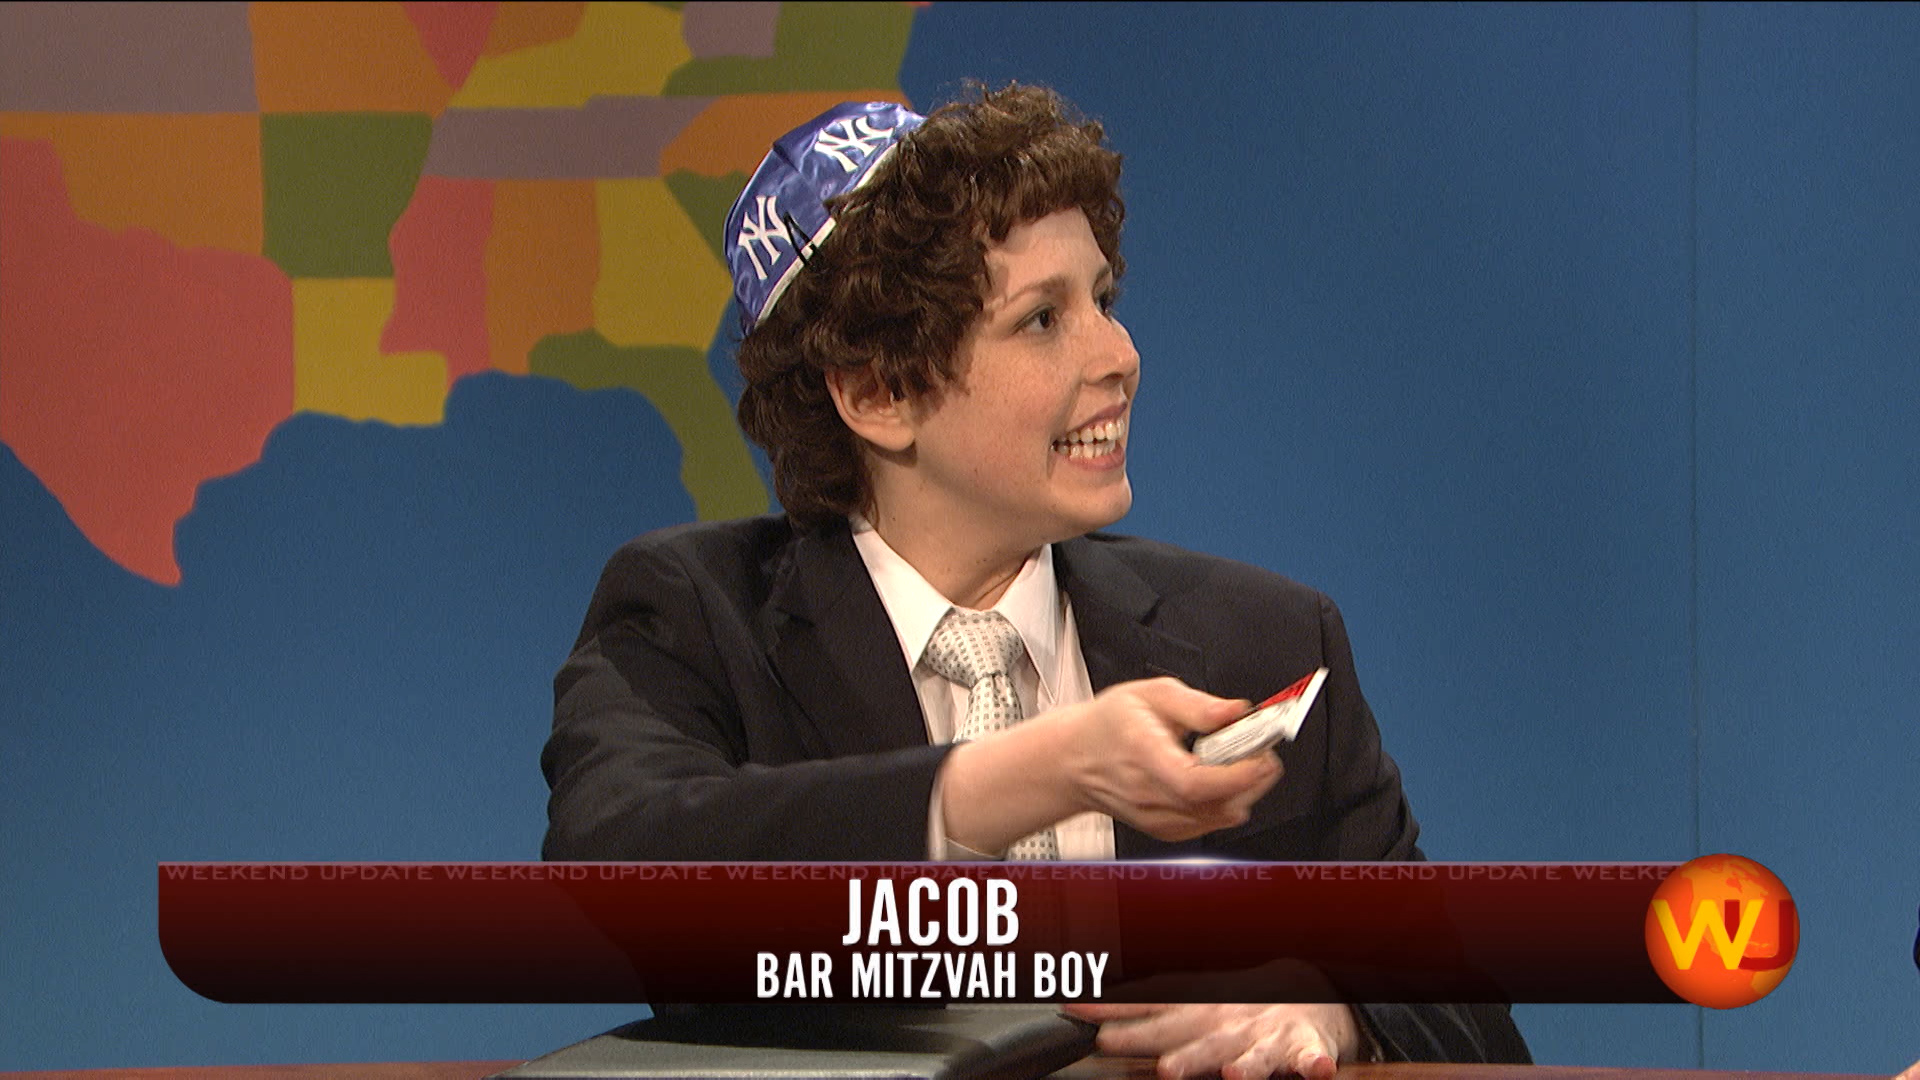 Saturday Night Live Mocks Over-The-Top Bar Mitzvah